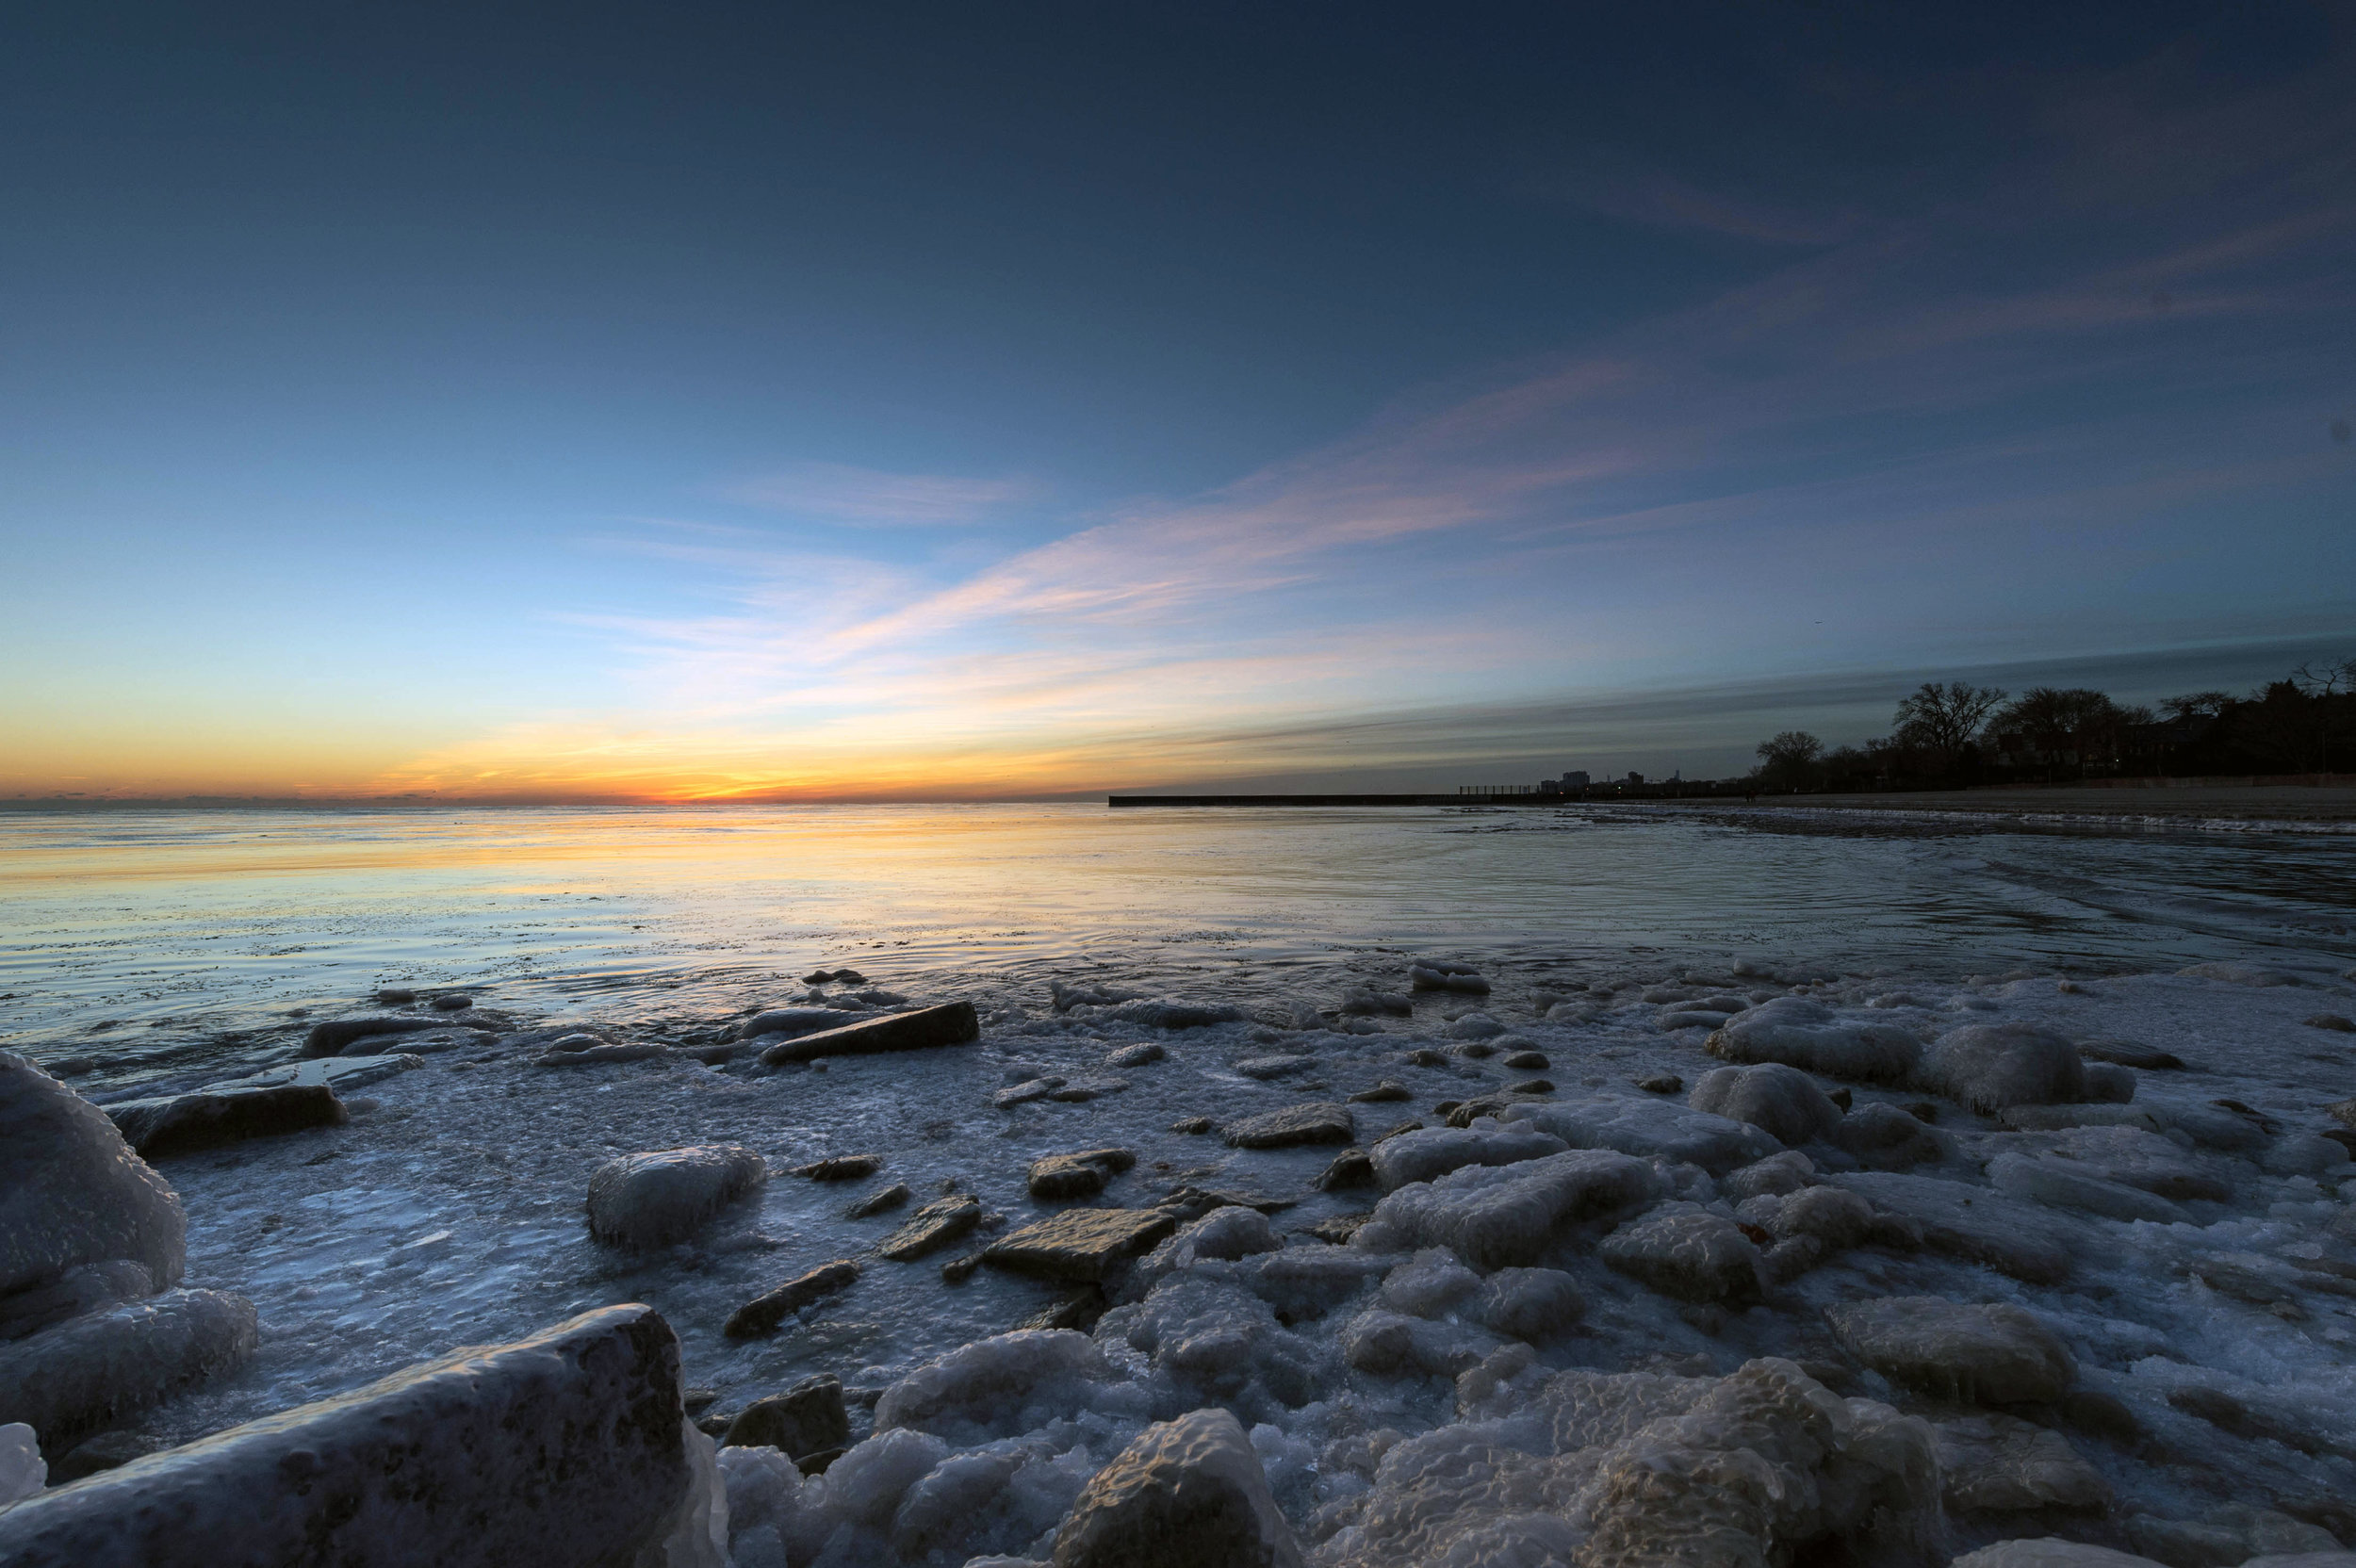 The December calendar image (above), Sunrise and Rocks, was taken on New Year's Day, 2016 at Lee Street Beach in Evanston.